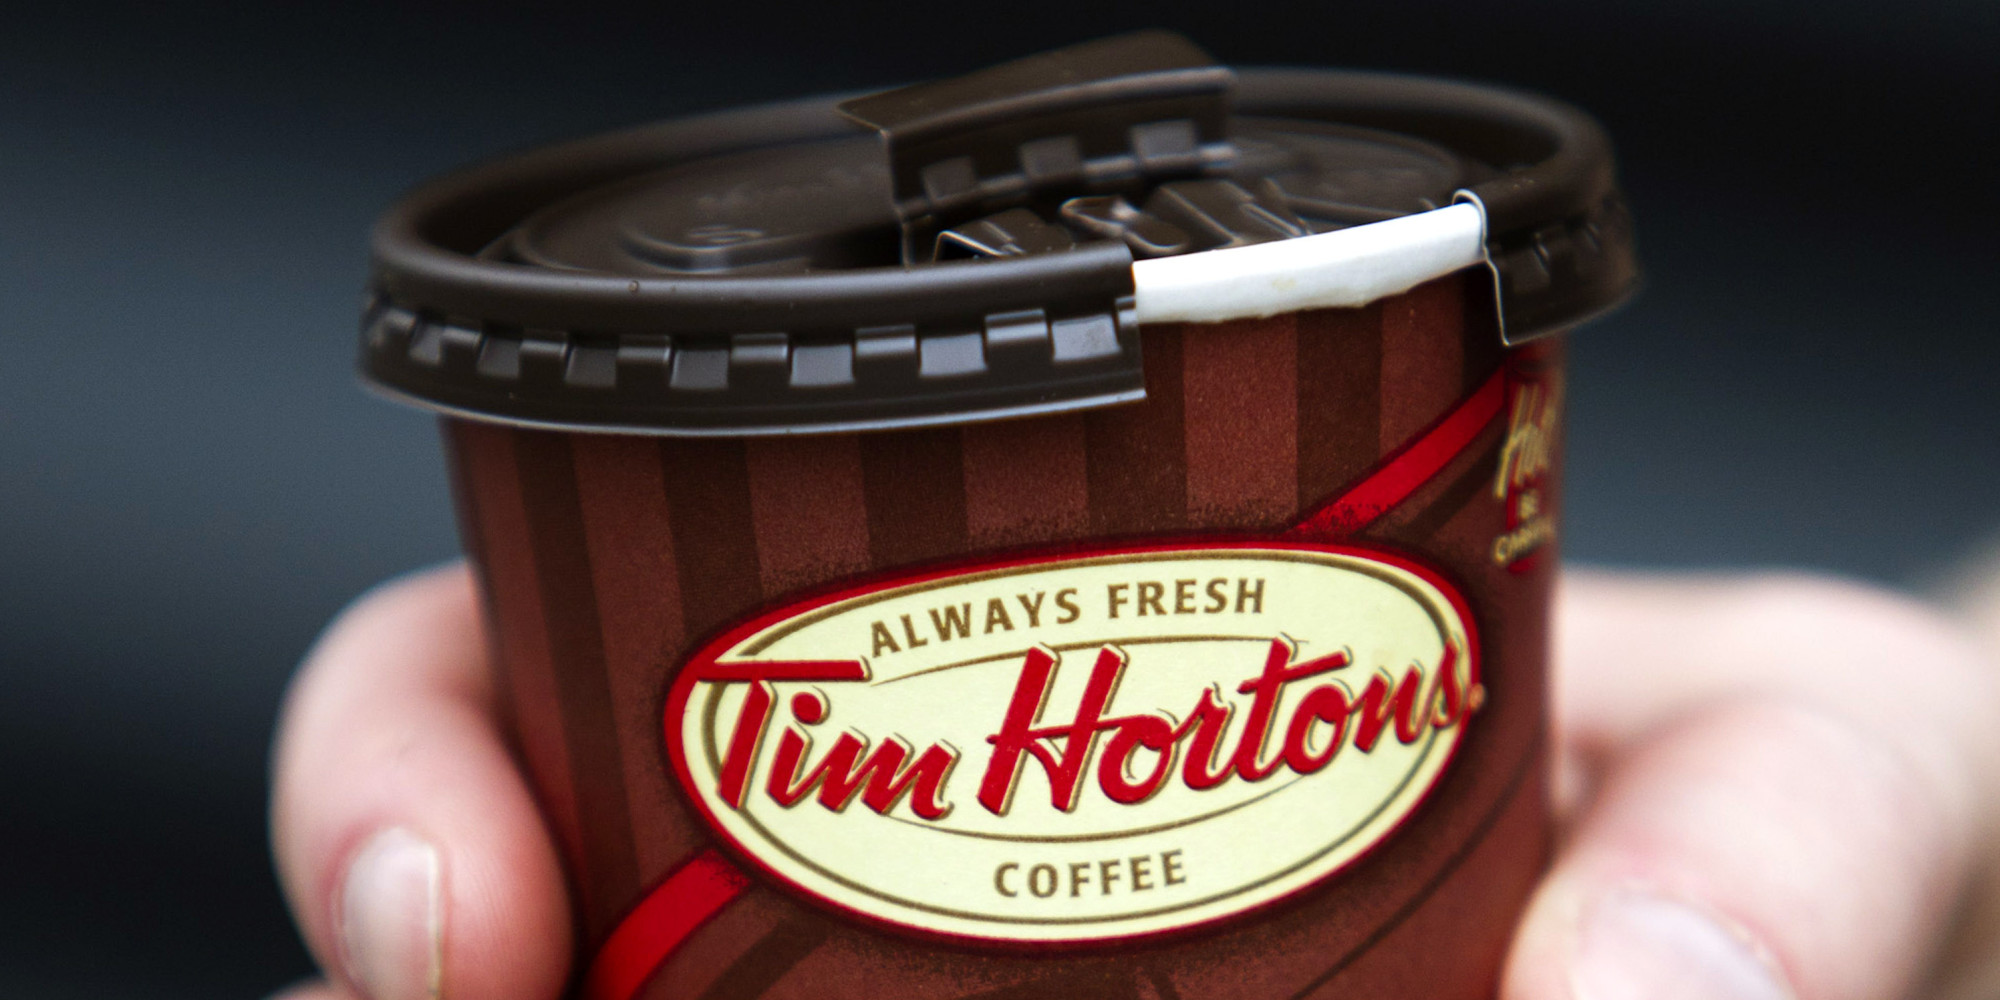 Cheapest Homes In The Us Tim Hortons Healthy Options Include Coffee Muffins And